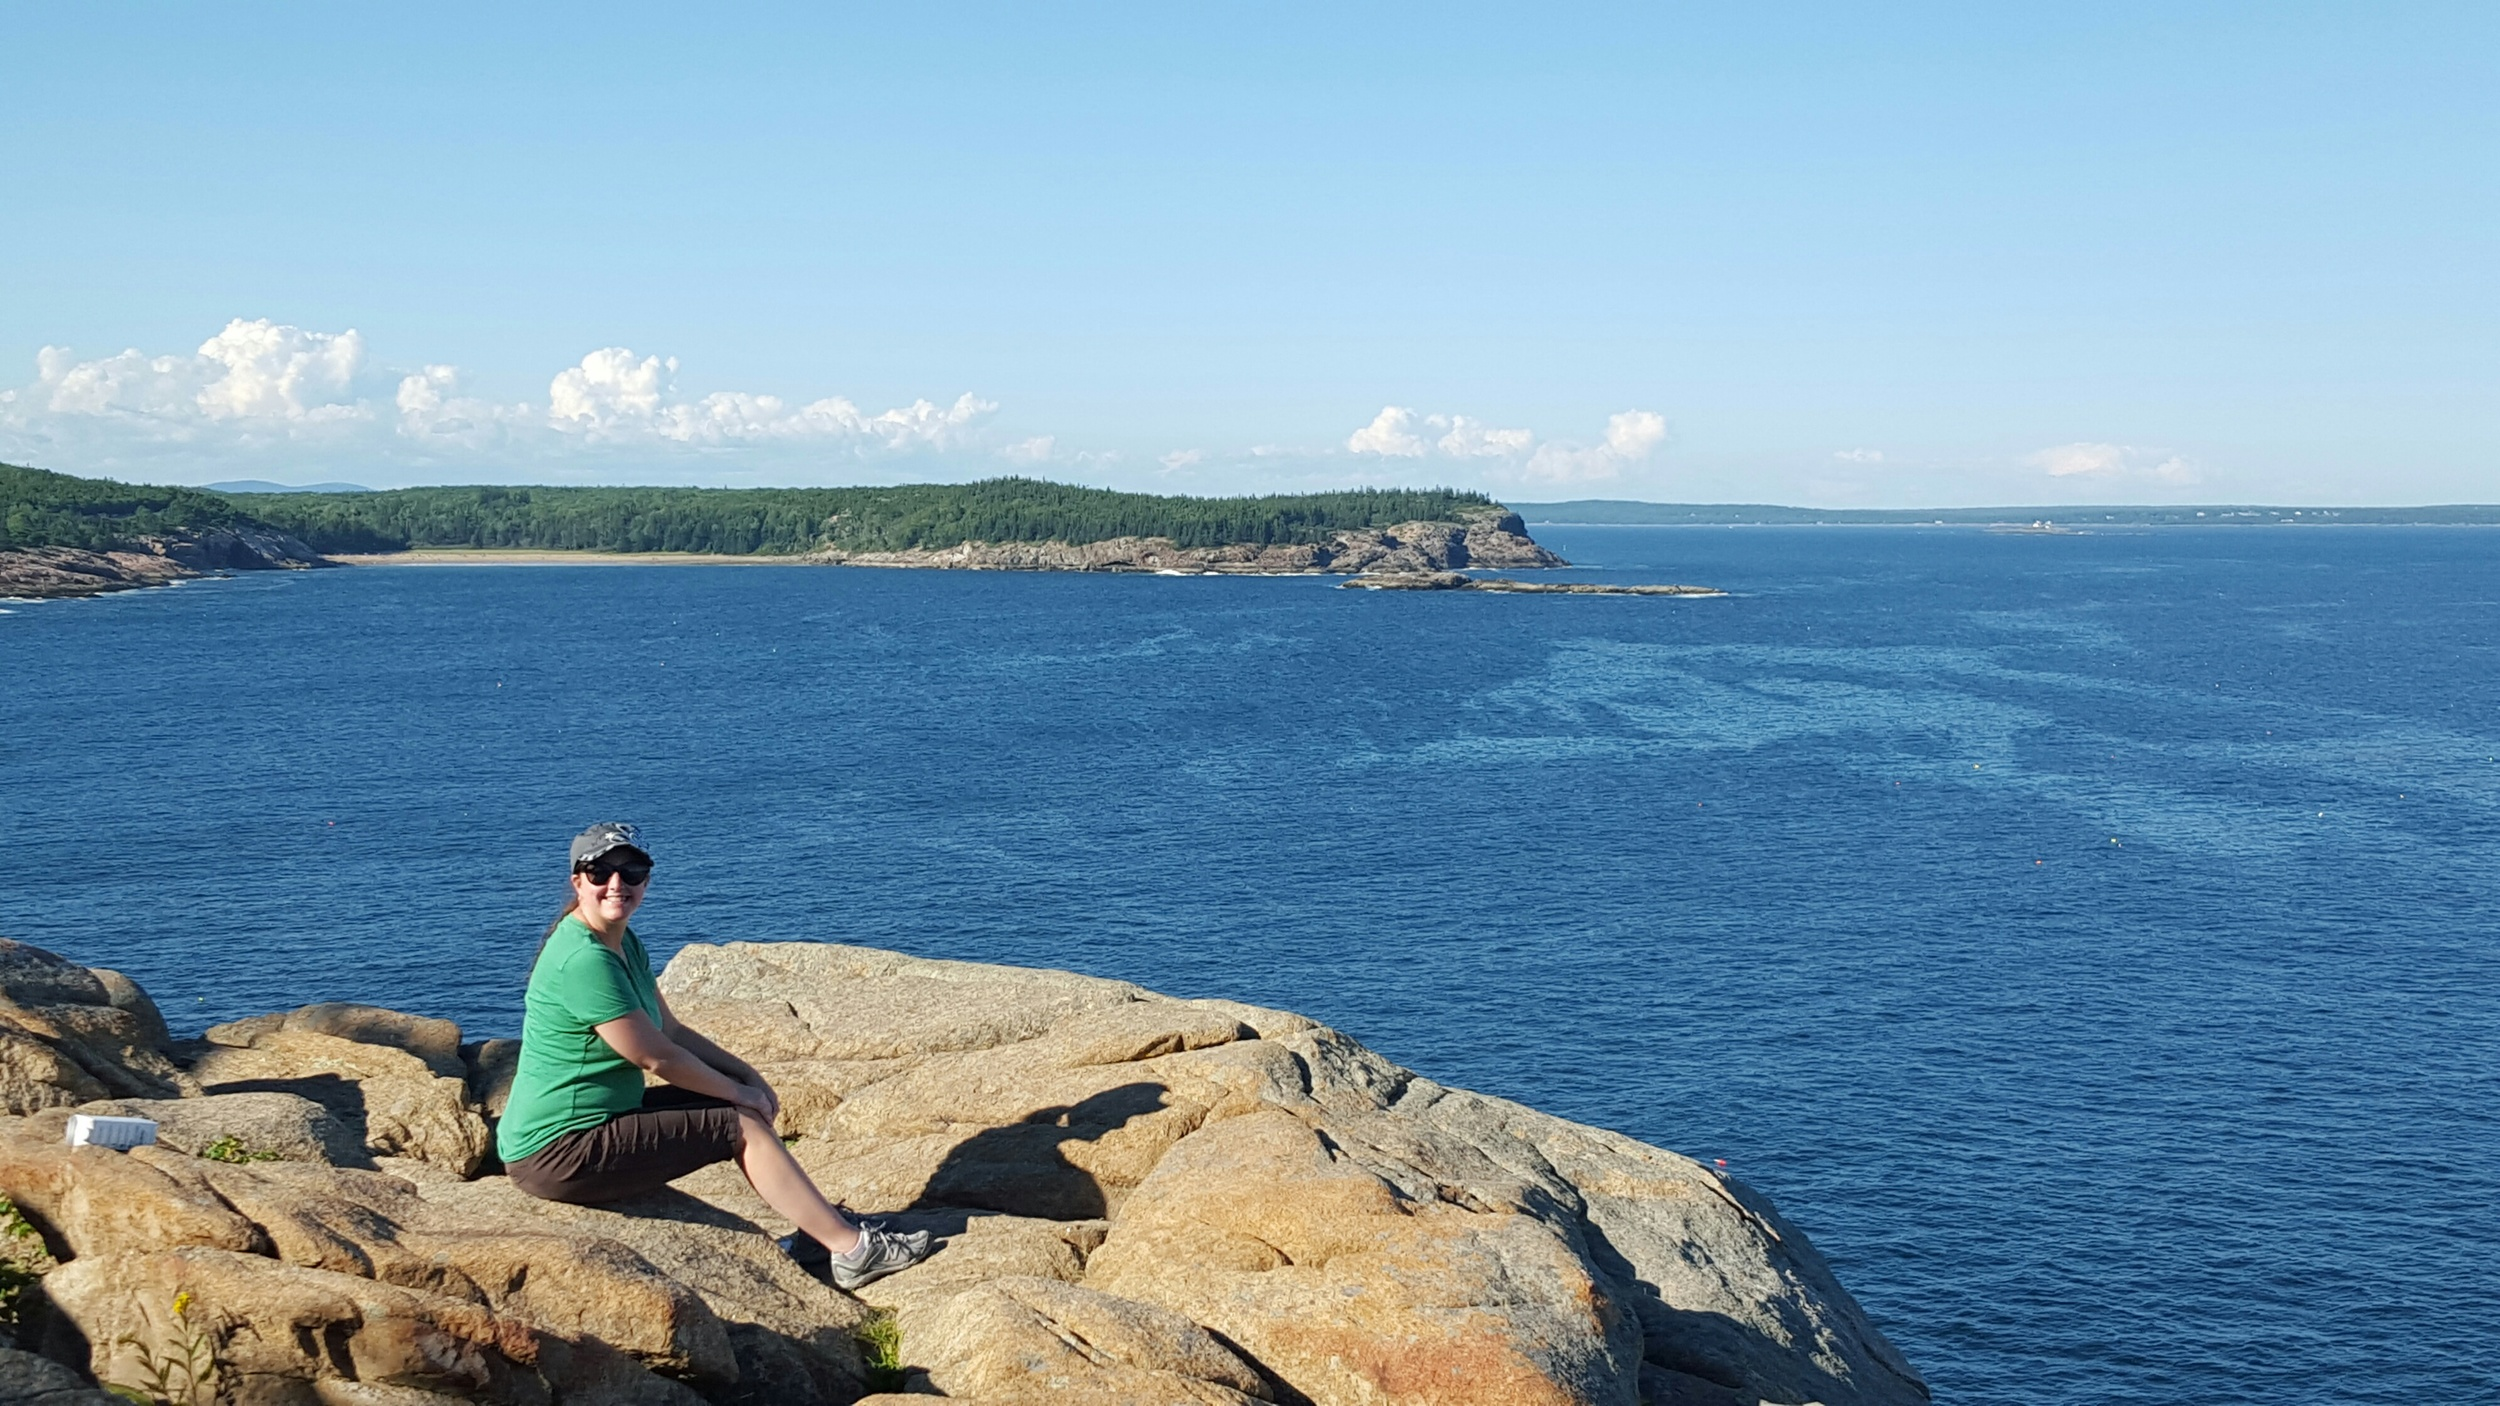 Here is the rewarding view from atop Otter Cliff!